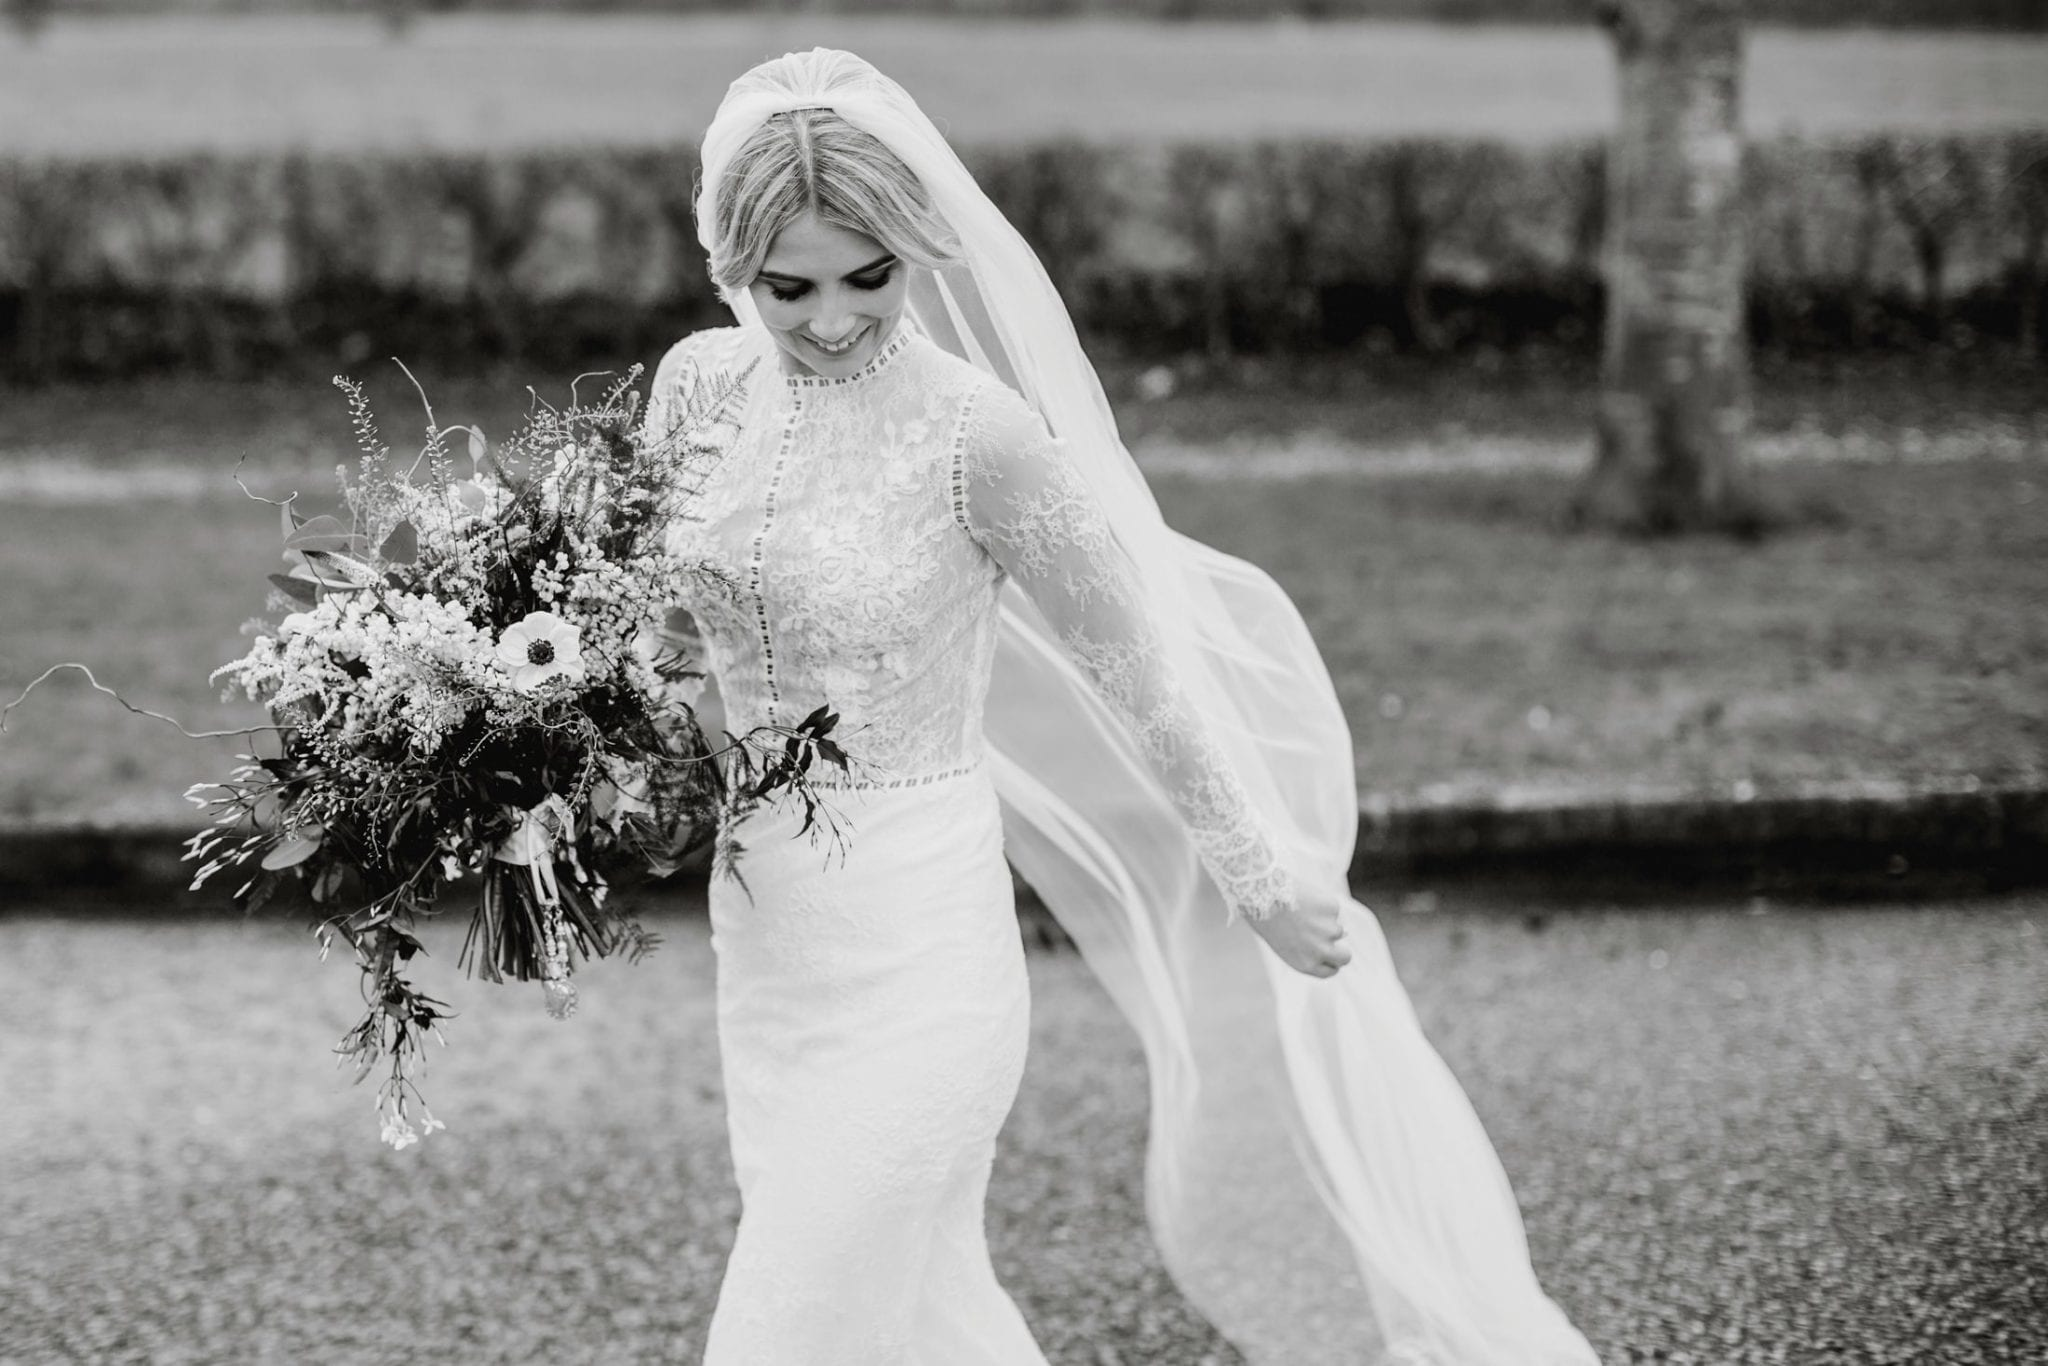 Bride in vintage wedding dress in black and white